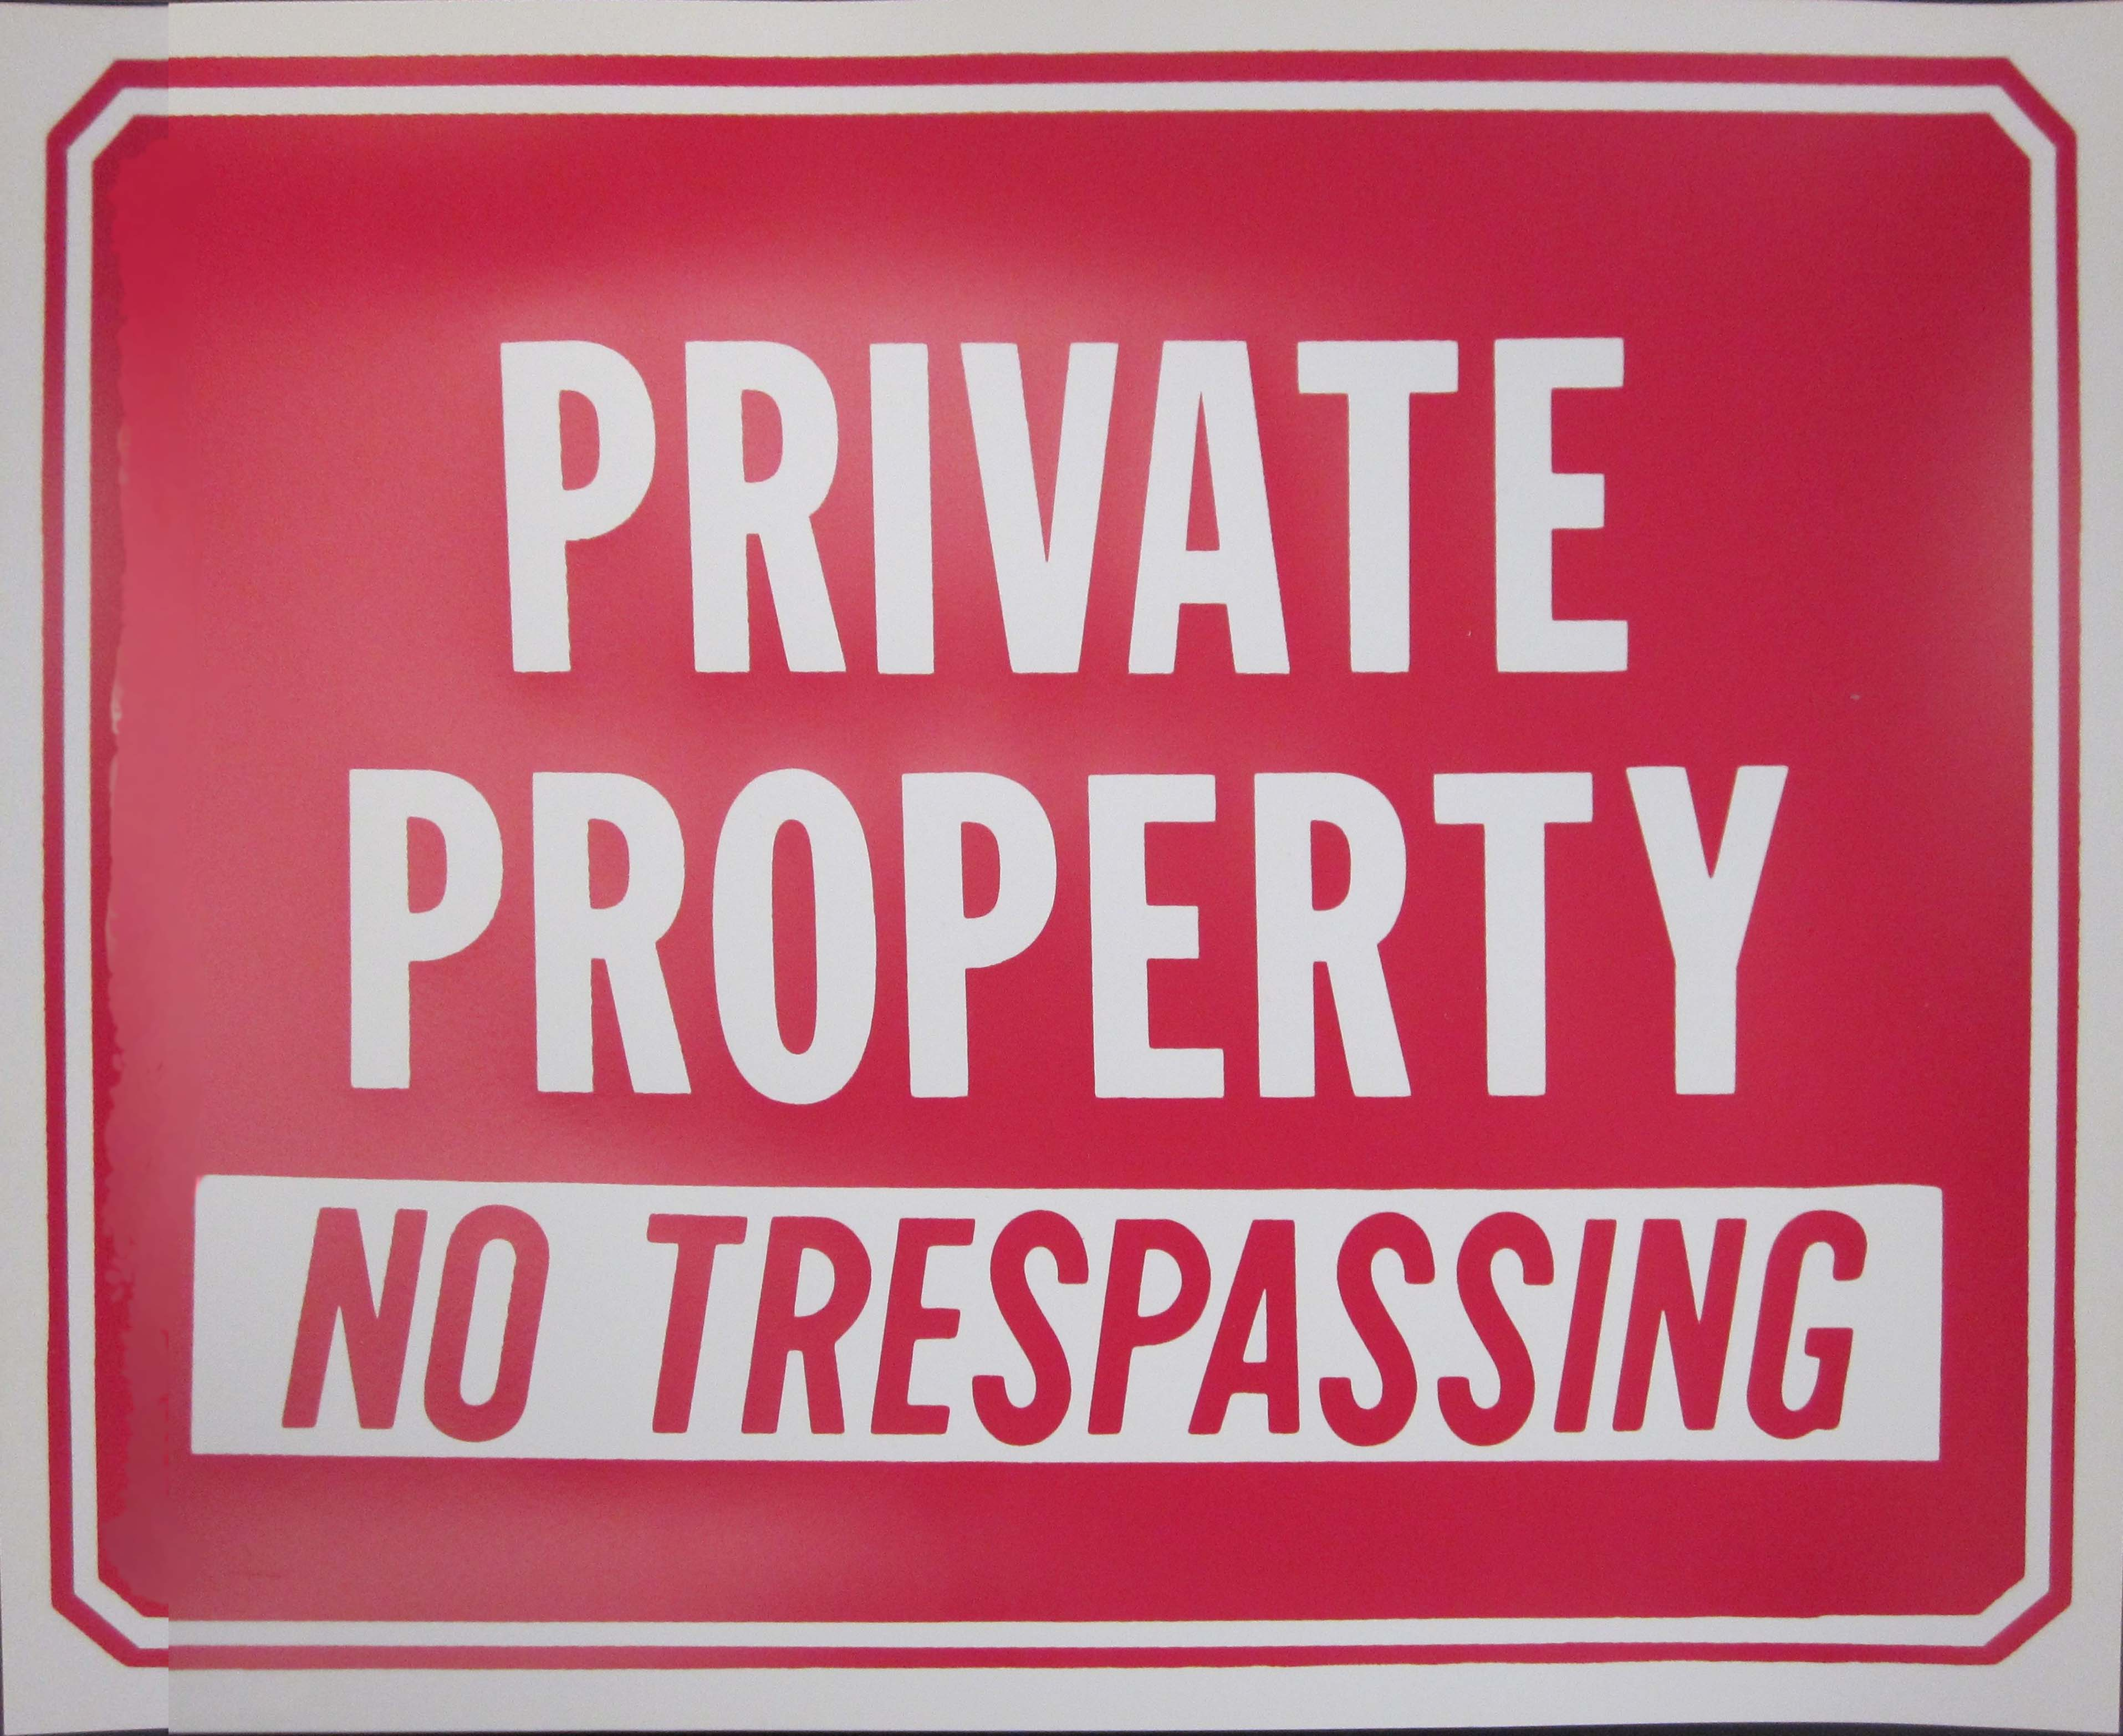 "Image logo for 12"" x 9"" Plastic Sign:  PRIVATE PROPERTY - NO TRESPASSING"